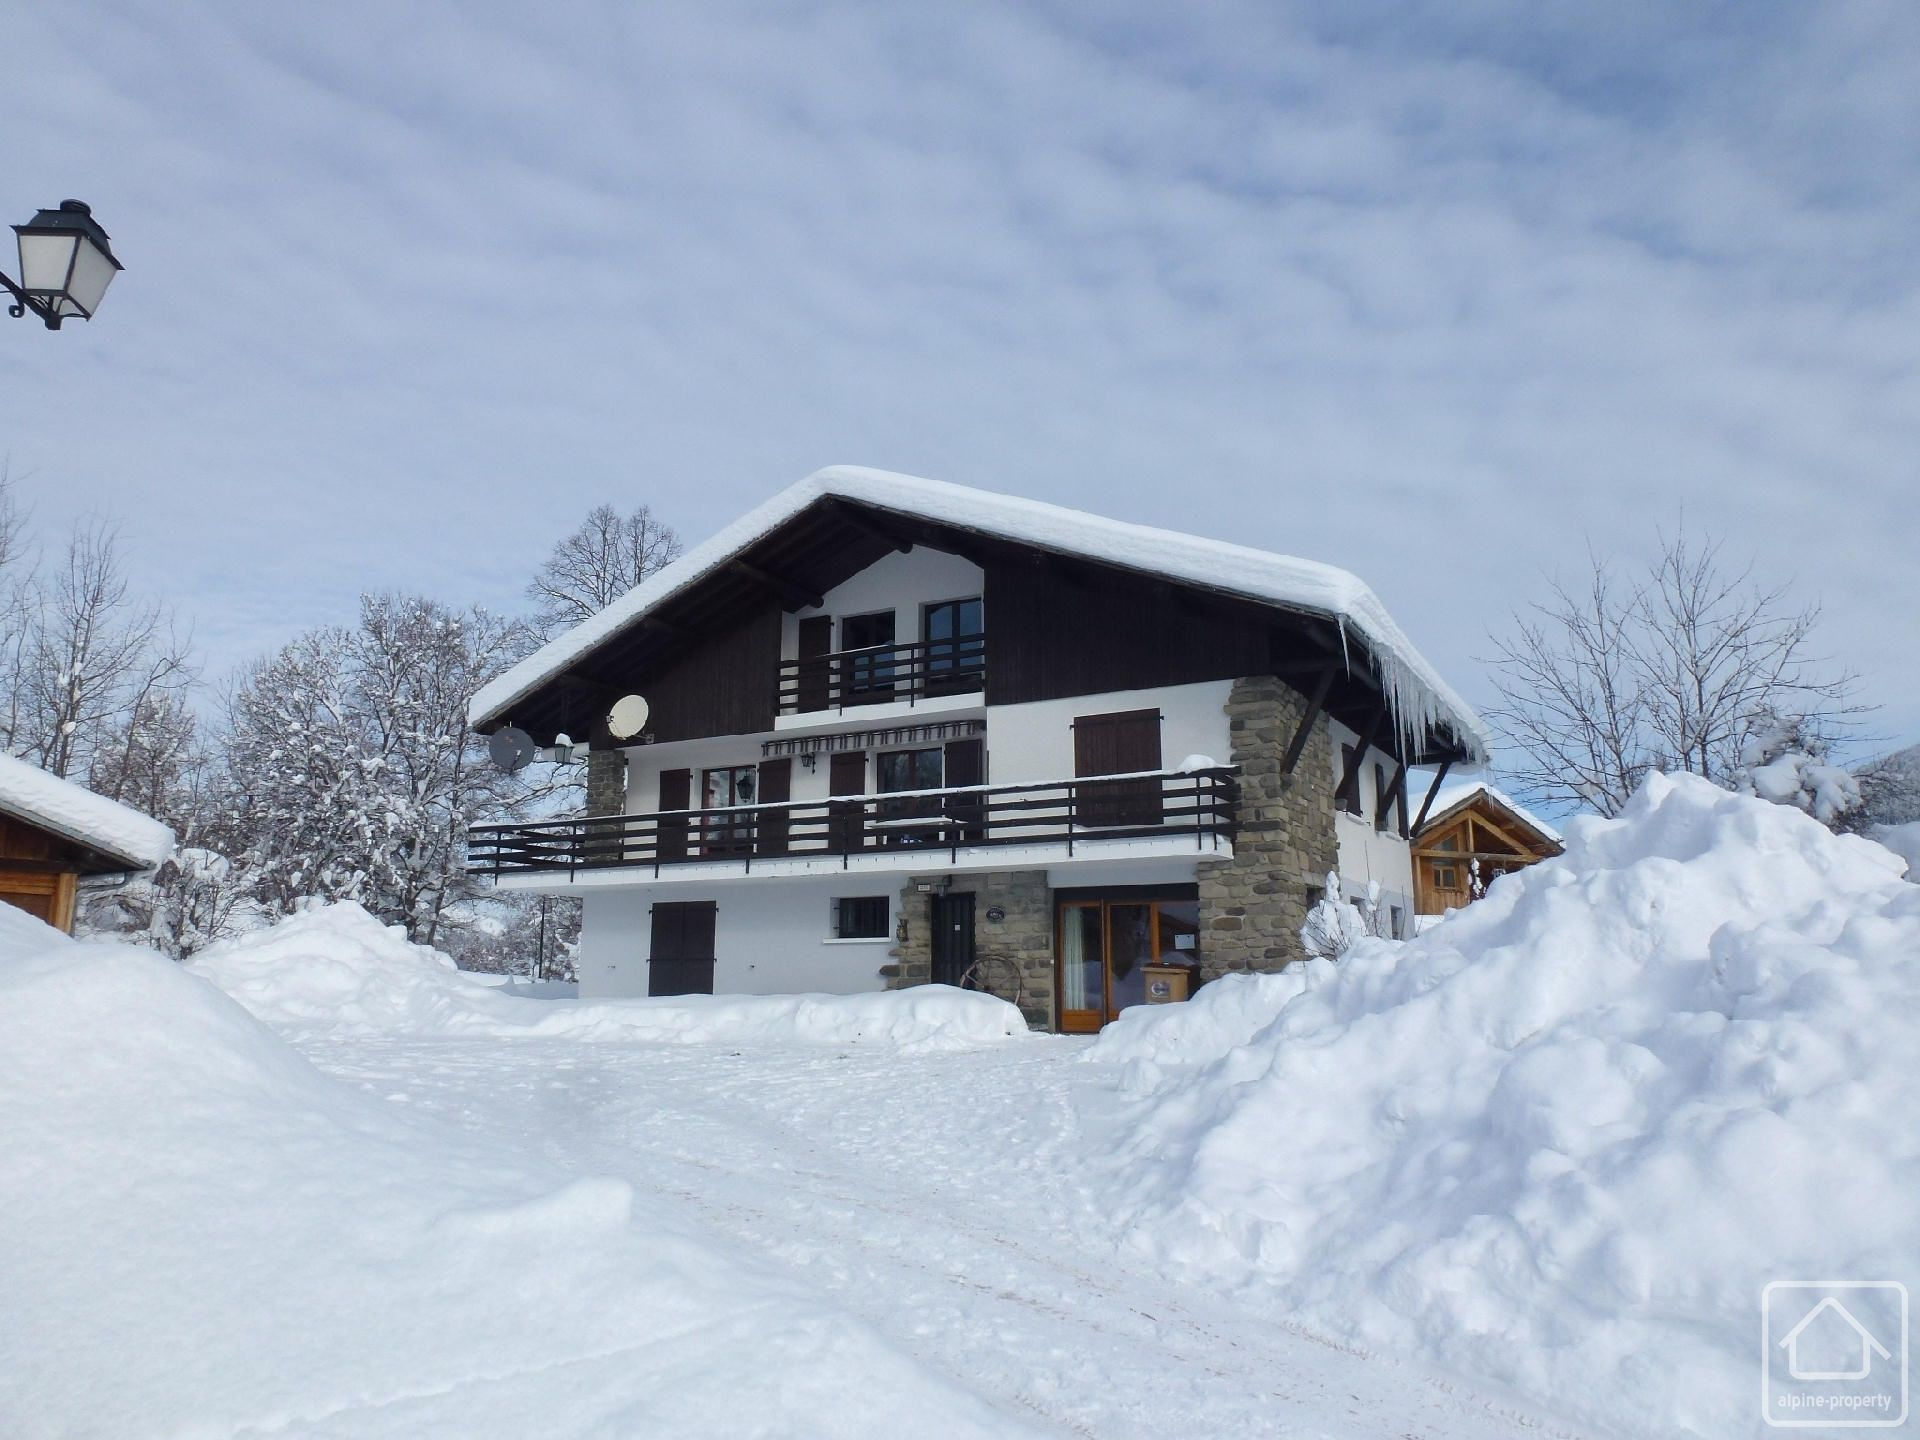 Chalet cyclamen alpine property estate agent in the french alps - Garage du ski les carroz ...